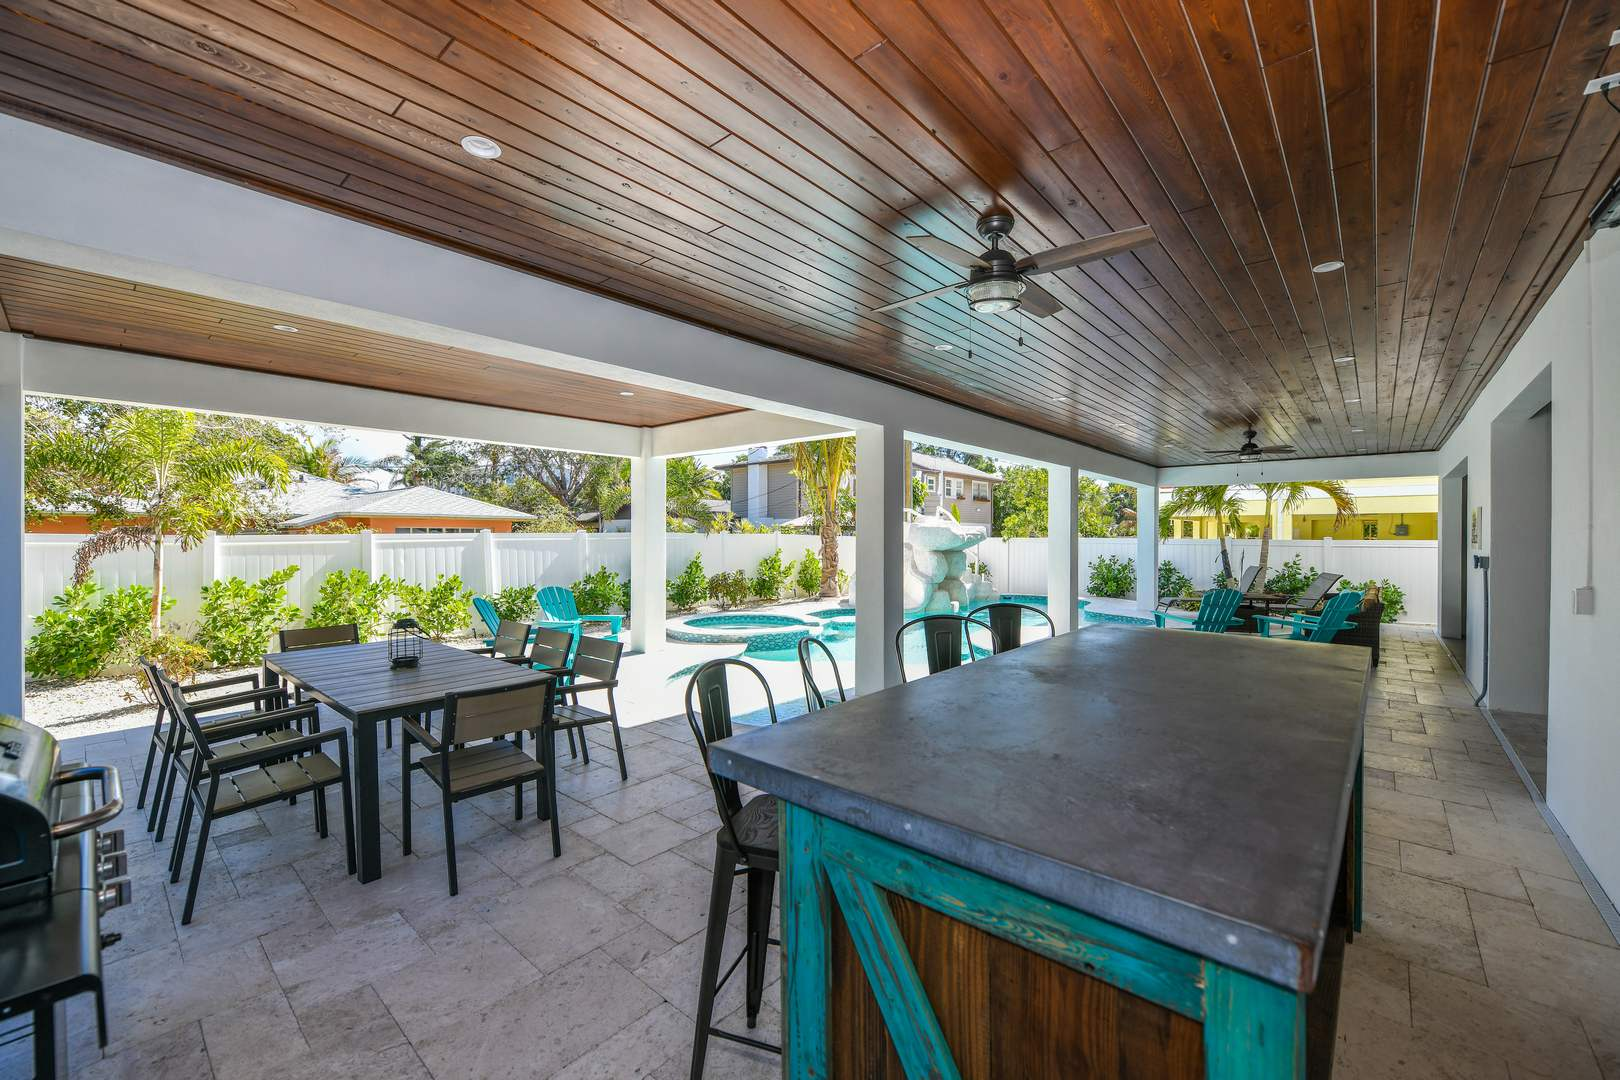 Example - covered patio by pool